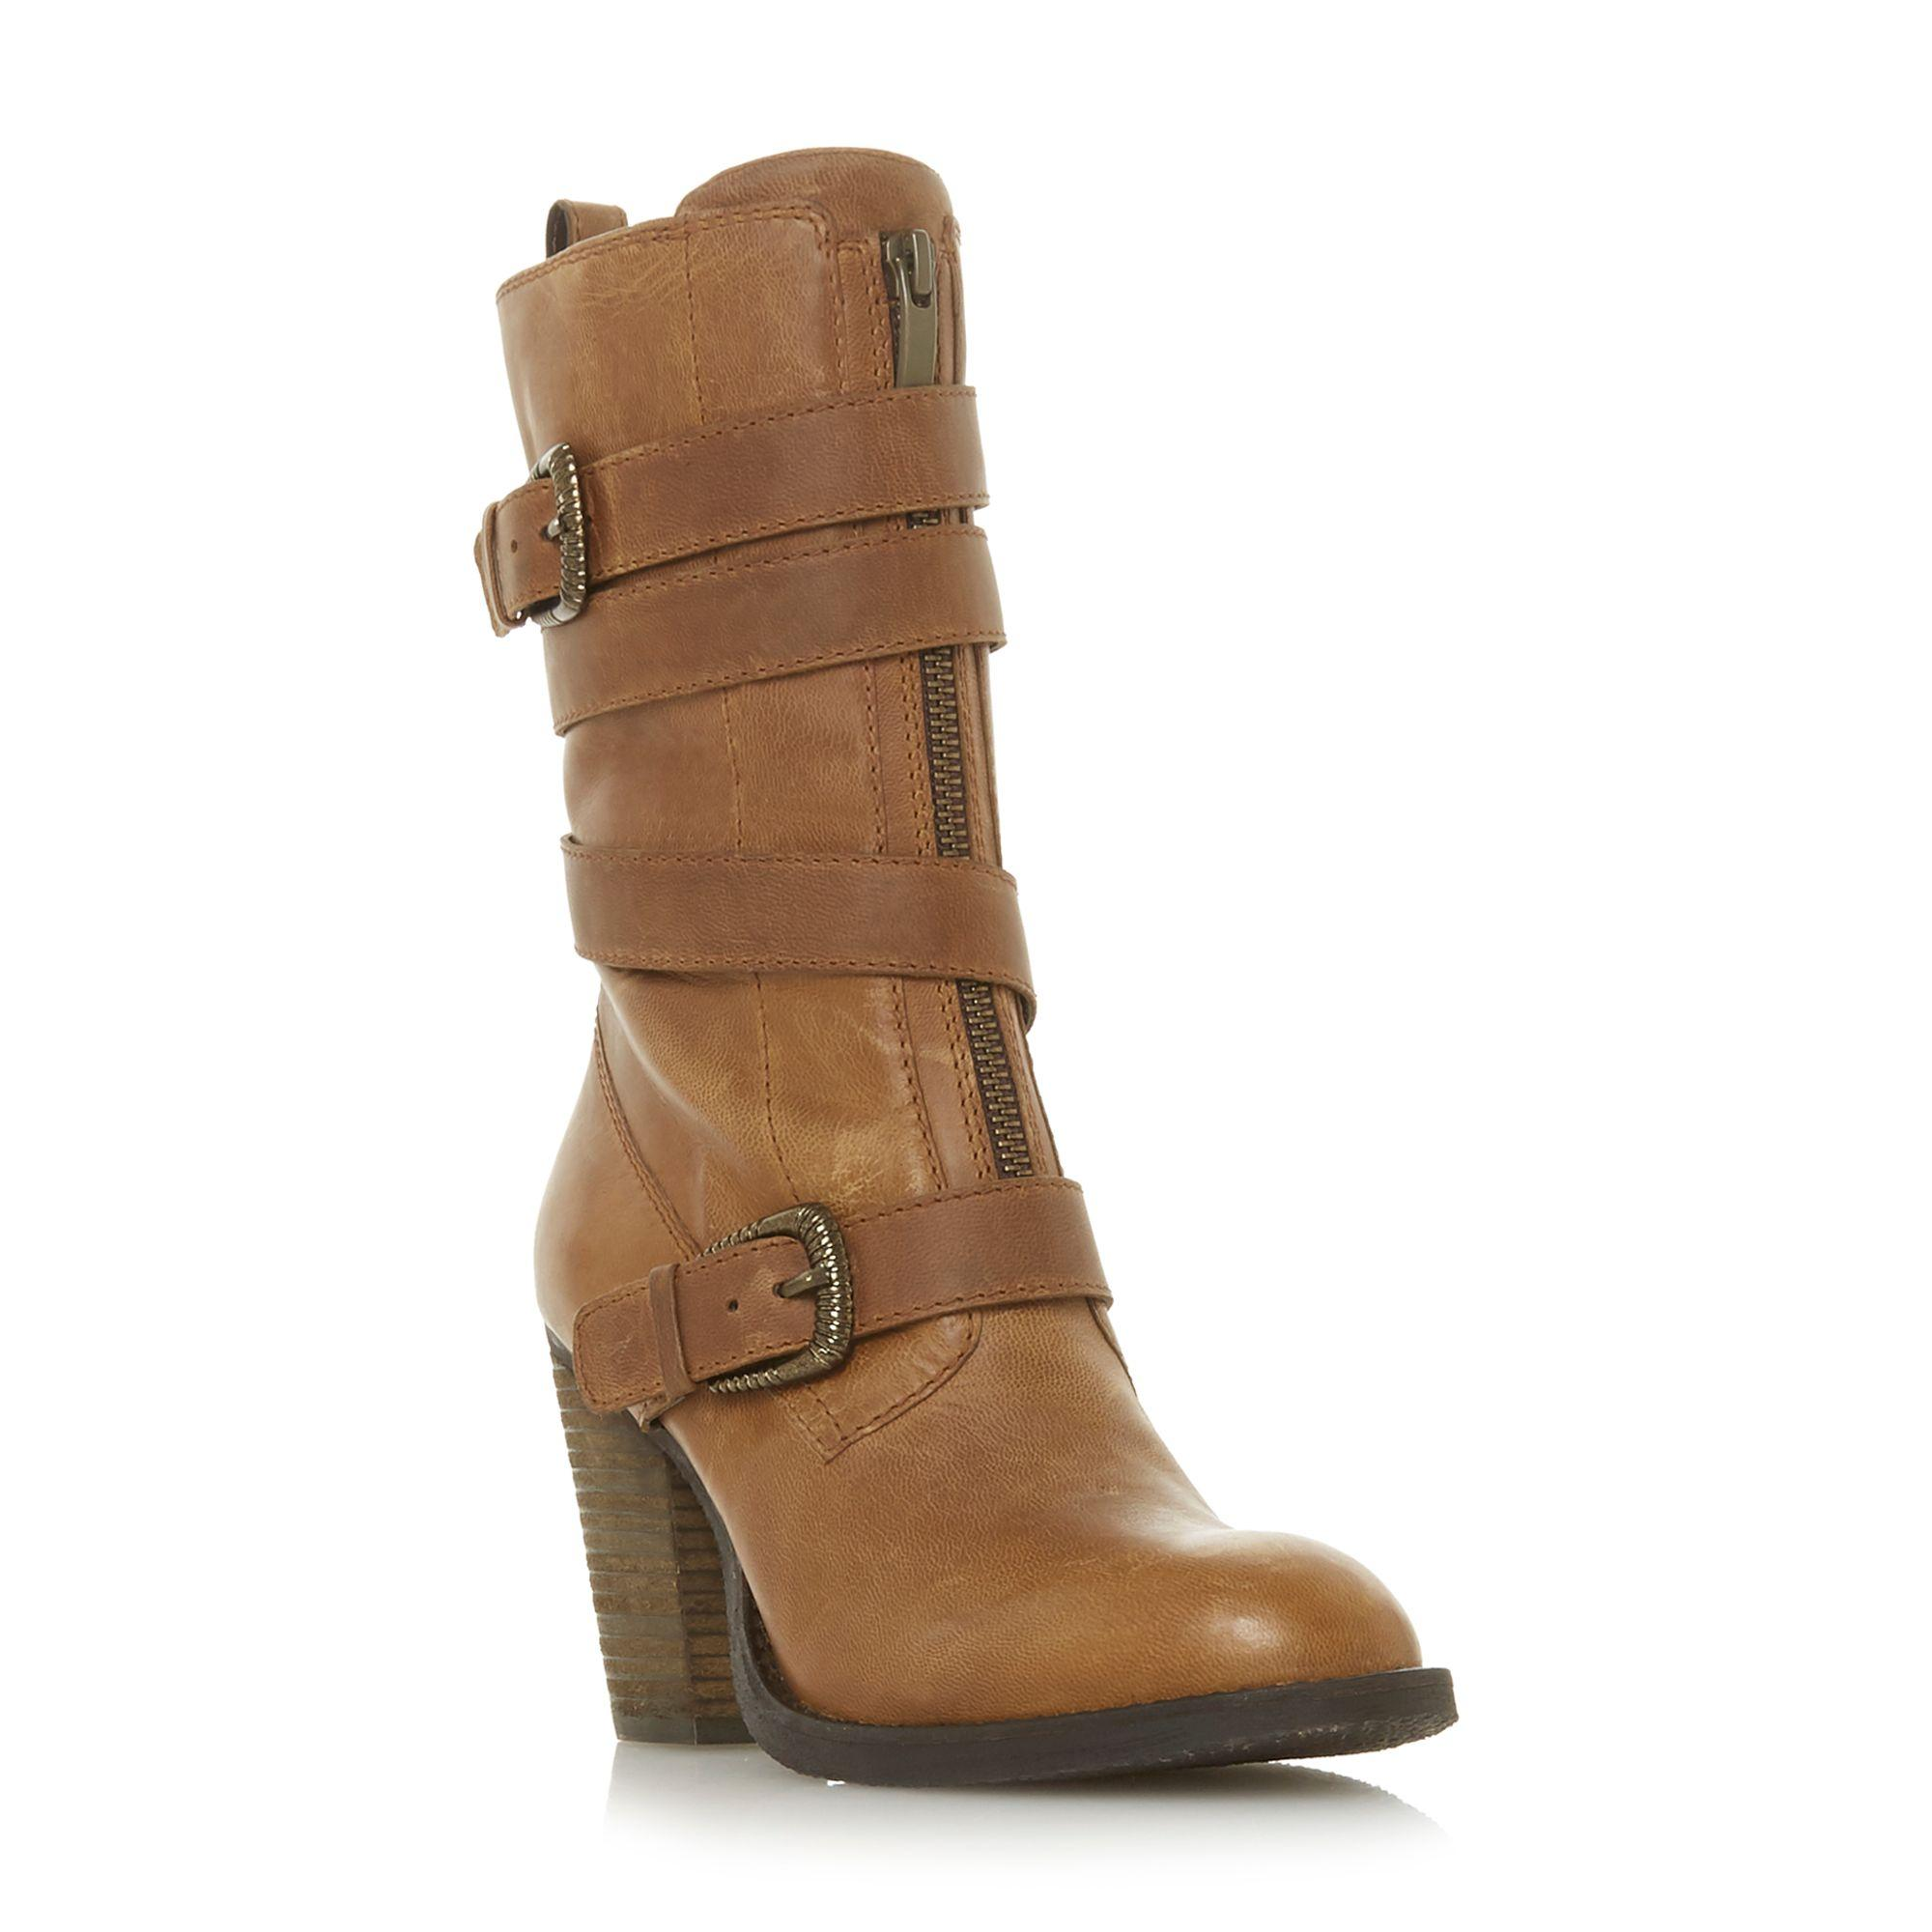 2e9d146e25f Steve Madden Yens Sm Double Buckle Wrap Around Strap Boots in Brown ...